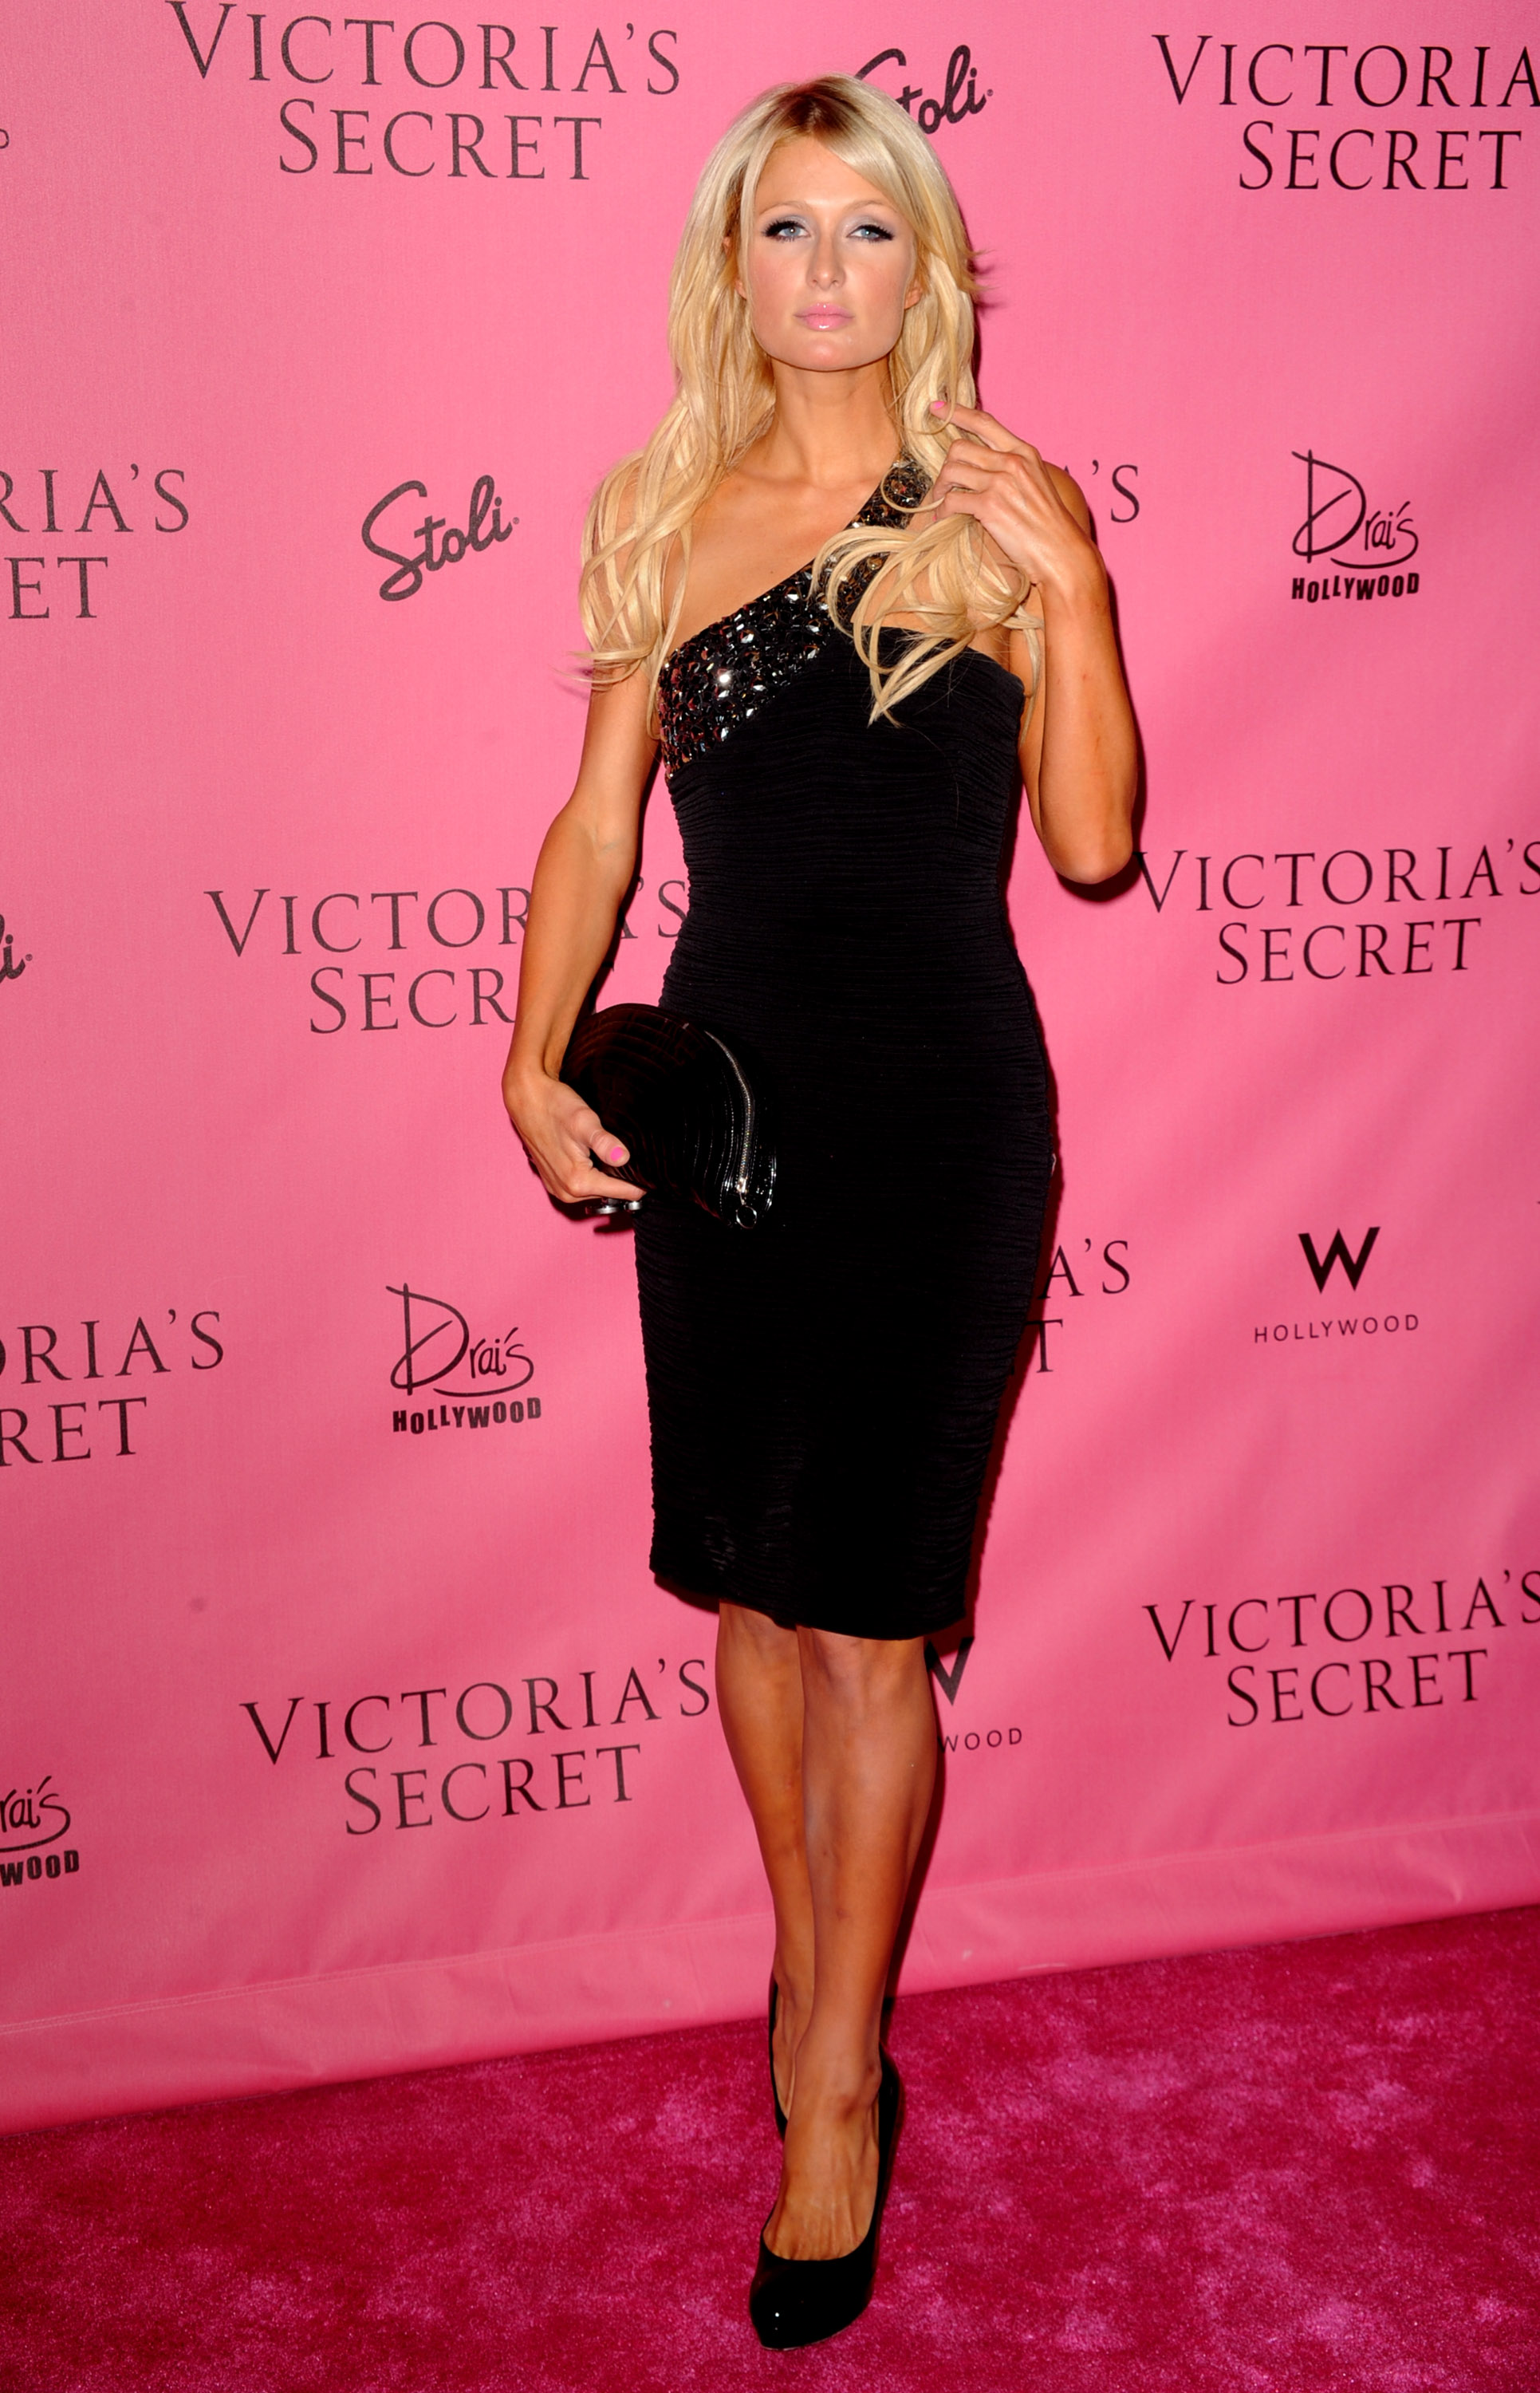 Paris Hilton 2010 : paris-hilton-at-victorias-secret-5th-annual-what-is-sexy-event-16